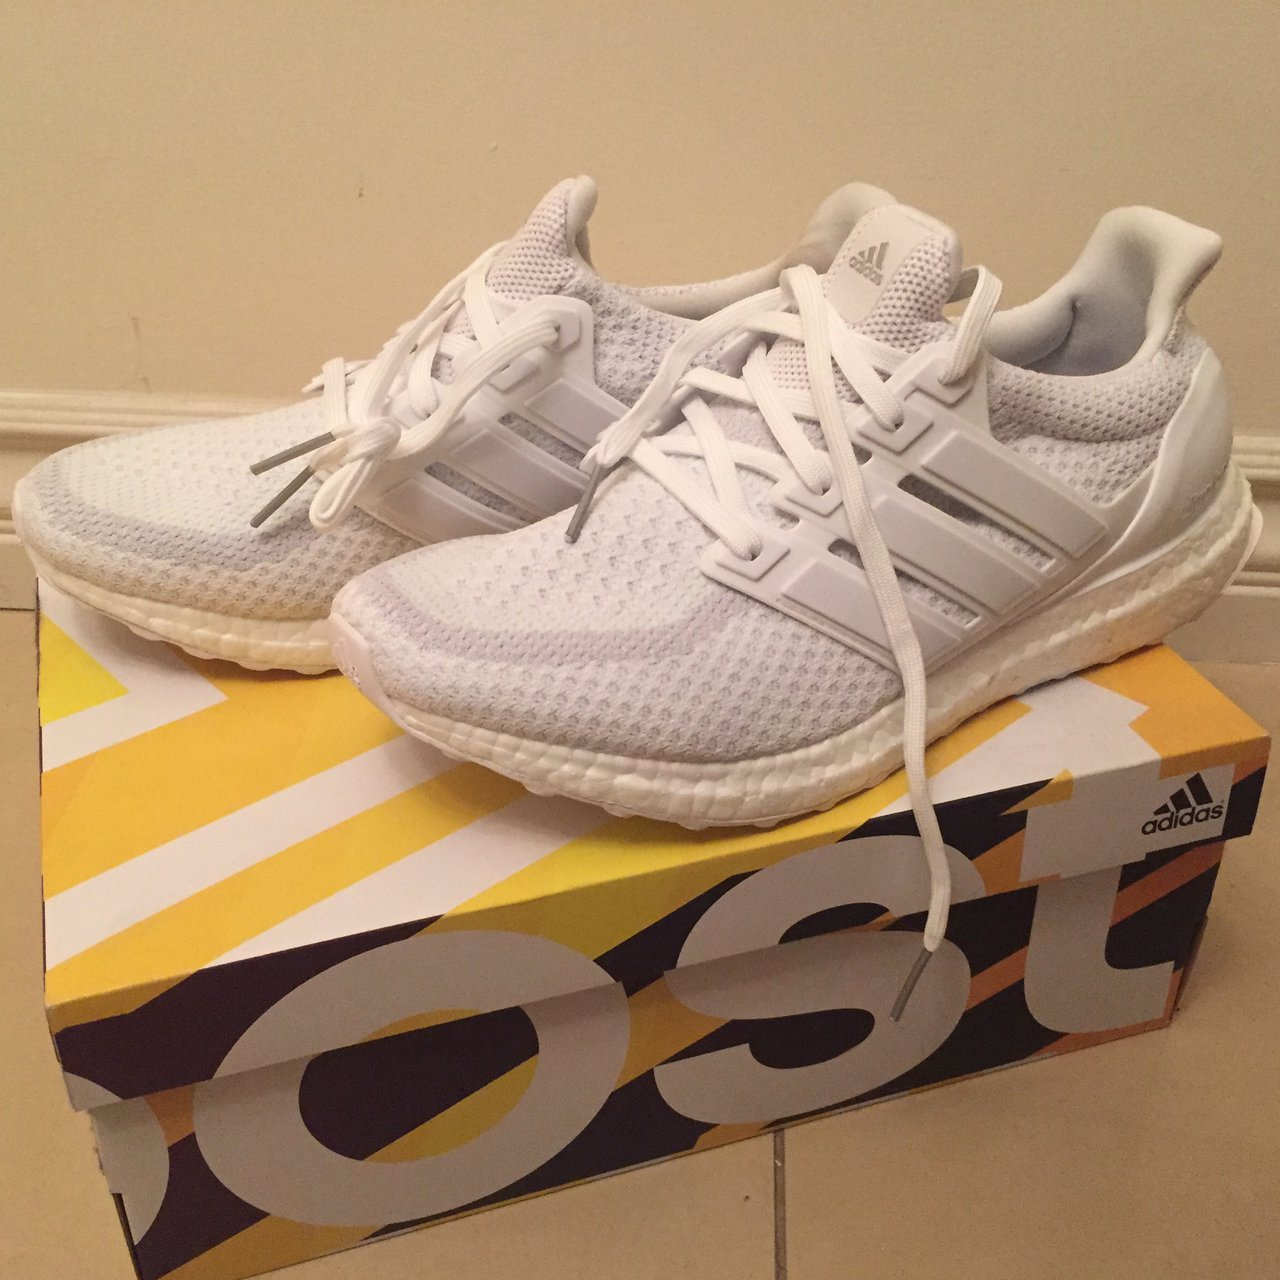 slowcity. last month. United States. ADIDAS UltraBOOST 2.0 Triple White  Brand new ... 17da42c2e